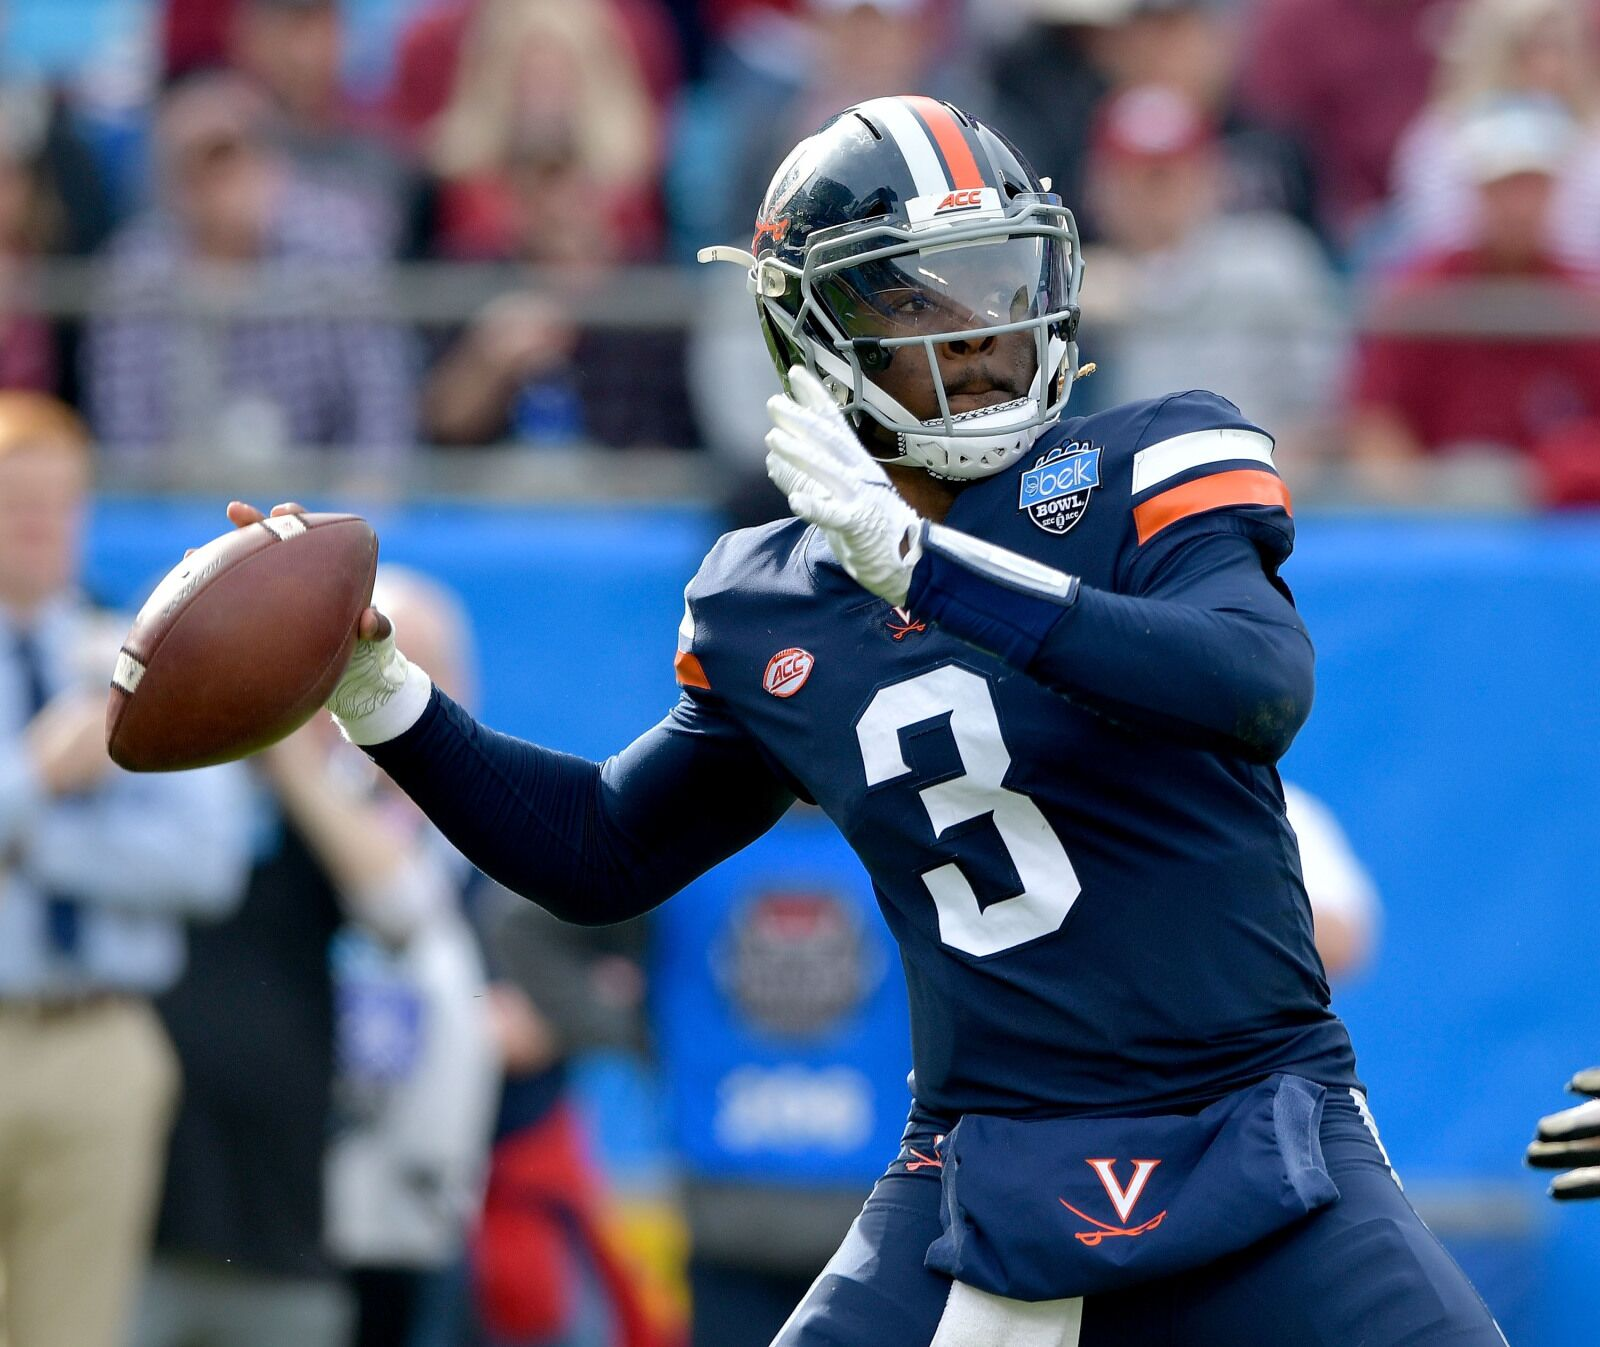 Virginia Football: Bryce Perkins is the best QB no one's talking about